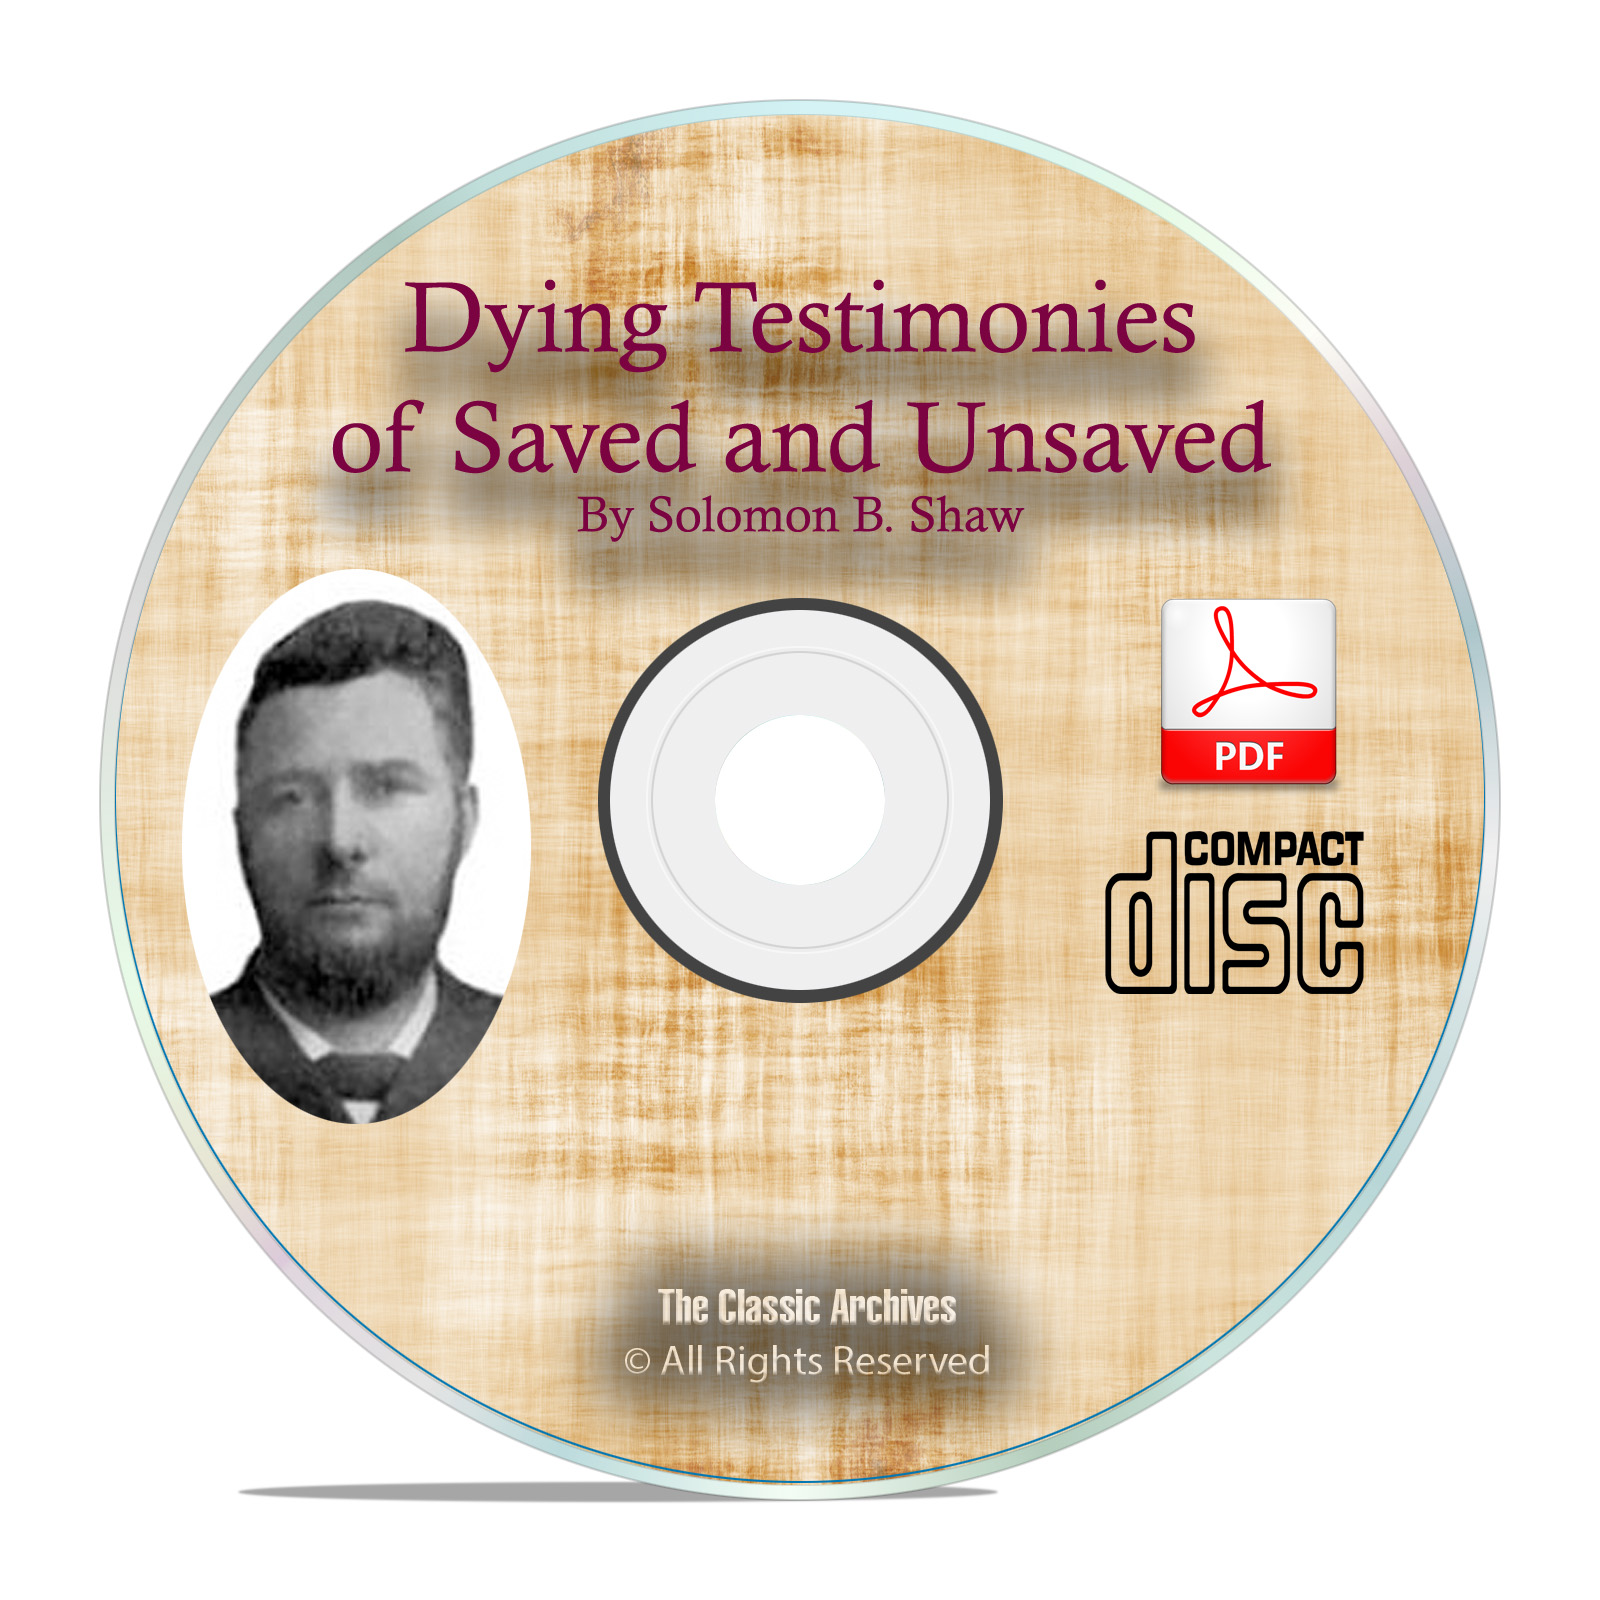 Dying Testimonies of Saved Unsaved-Solomon Shaw Christian Bible Study PDF C